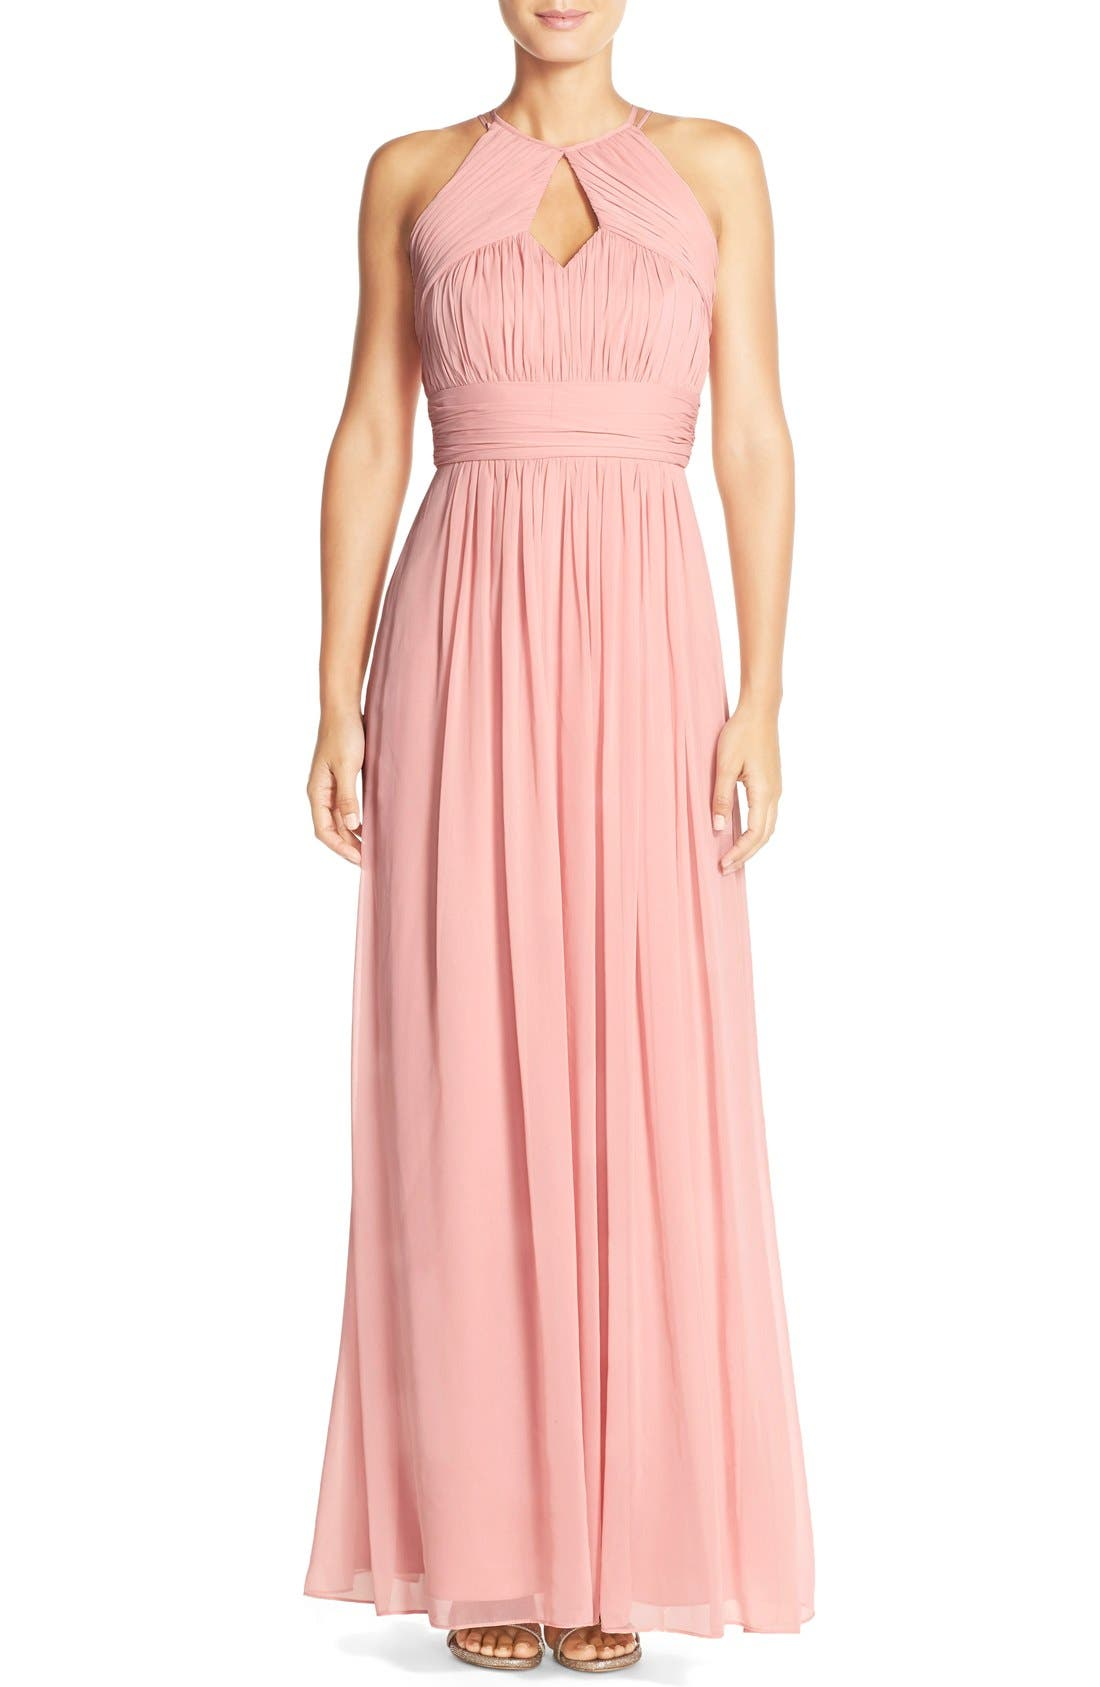 DESSY COLLECTION DessyCollection RuchedChiffon Keyhole Halter Gown